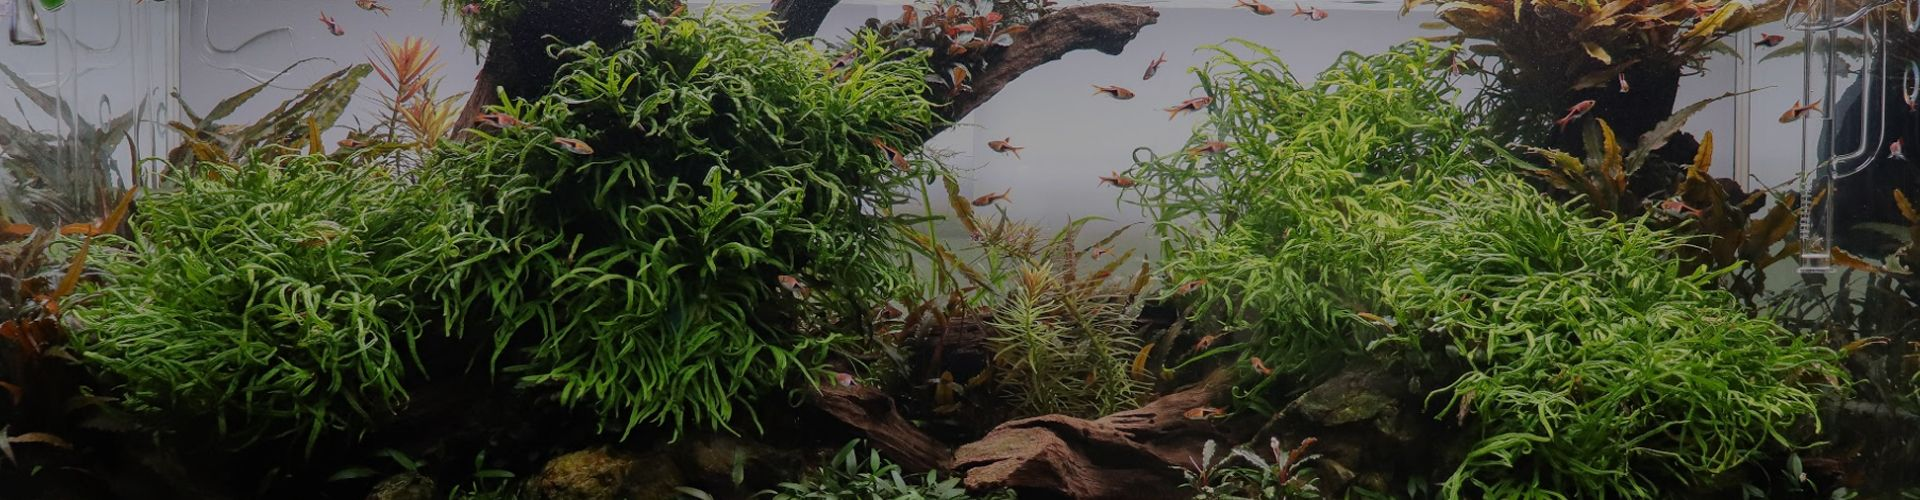 Aquarium Plants from Aquarium Gardens